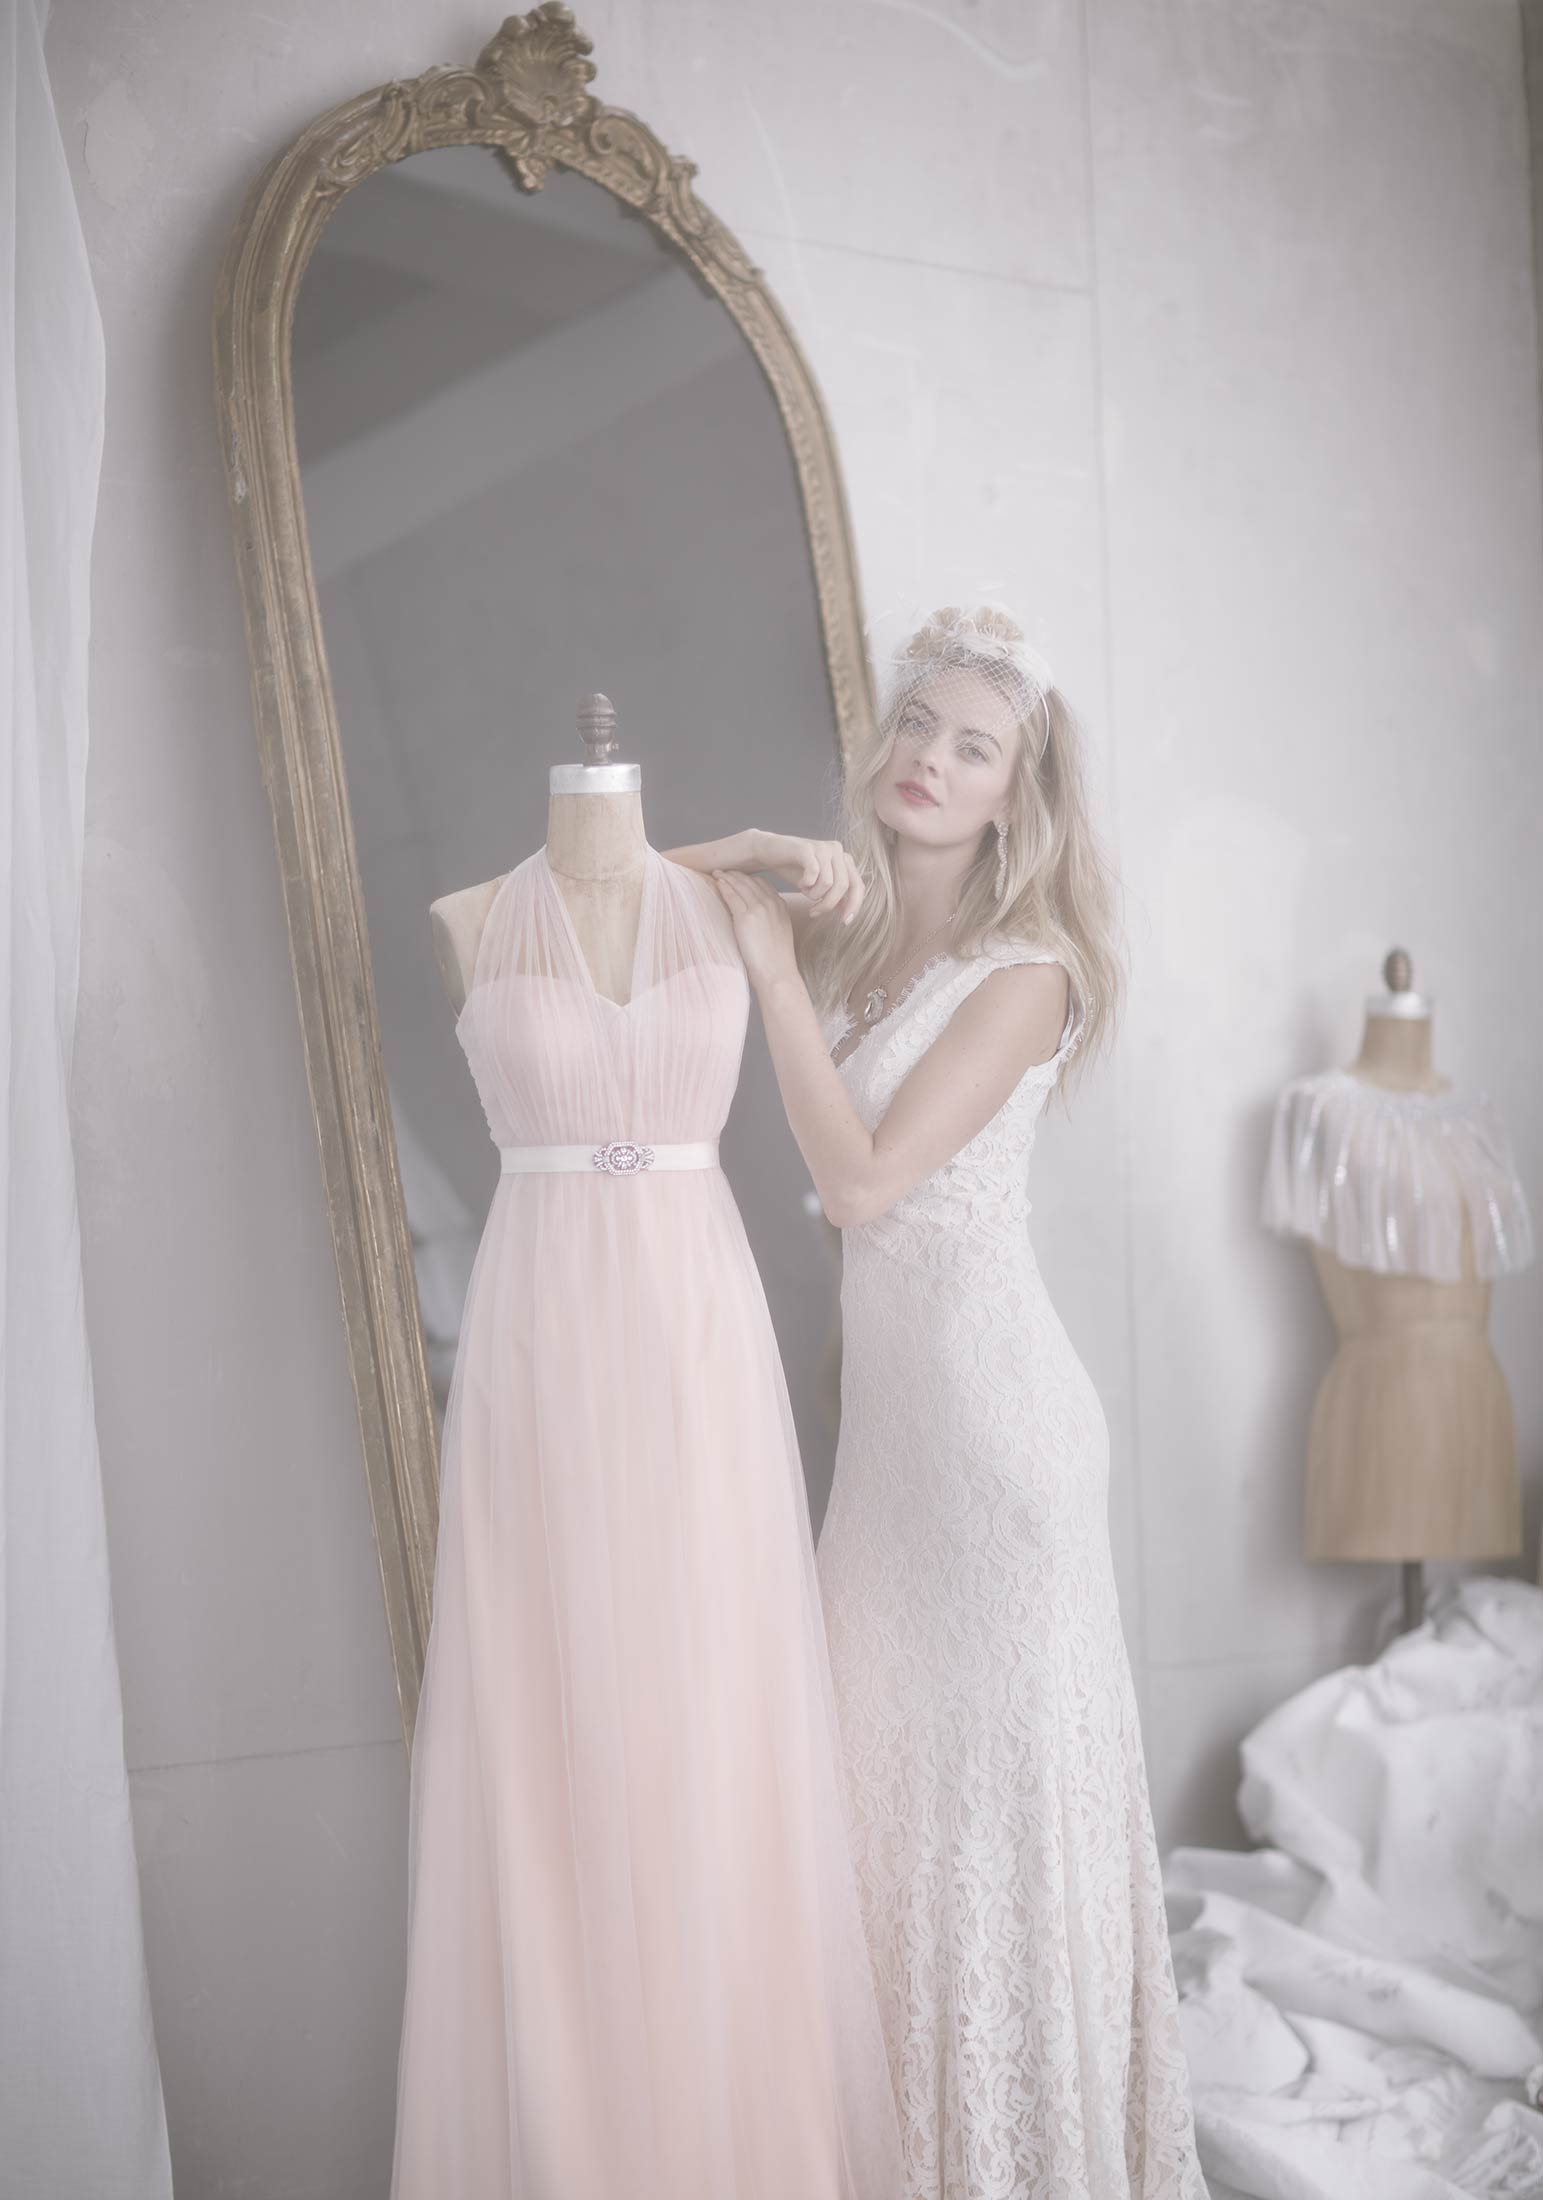 Bridal beauty photograph for BHLDN of model leaning on a dress form